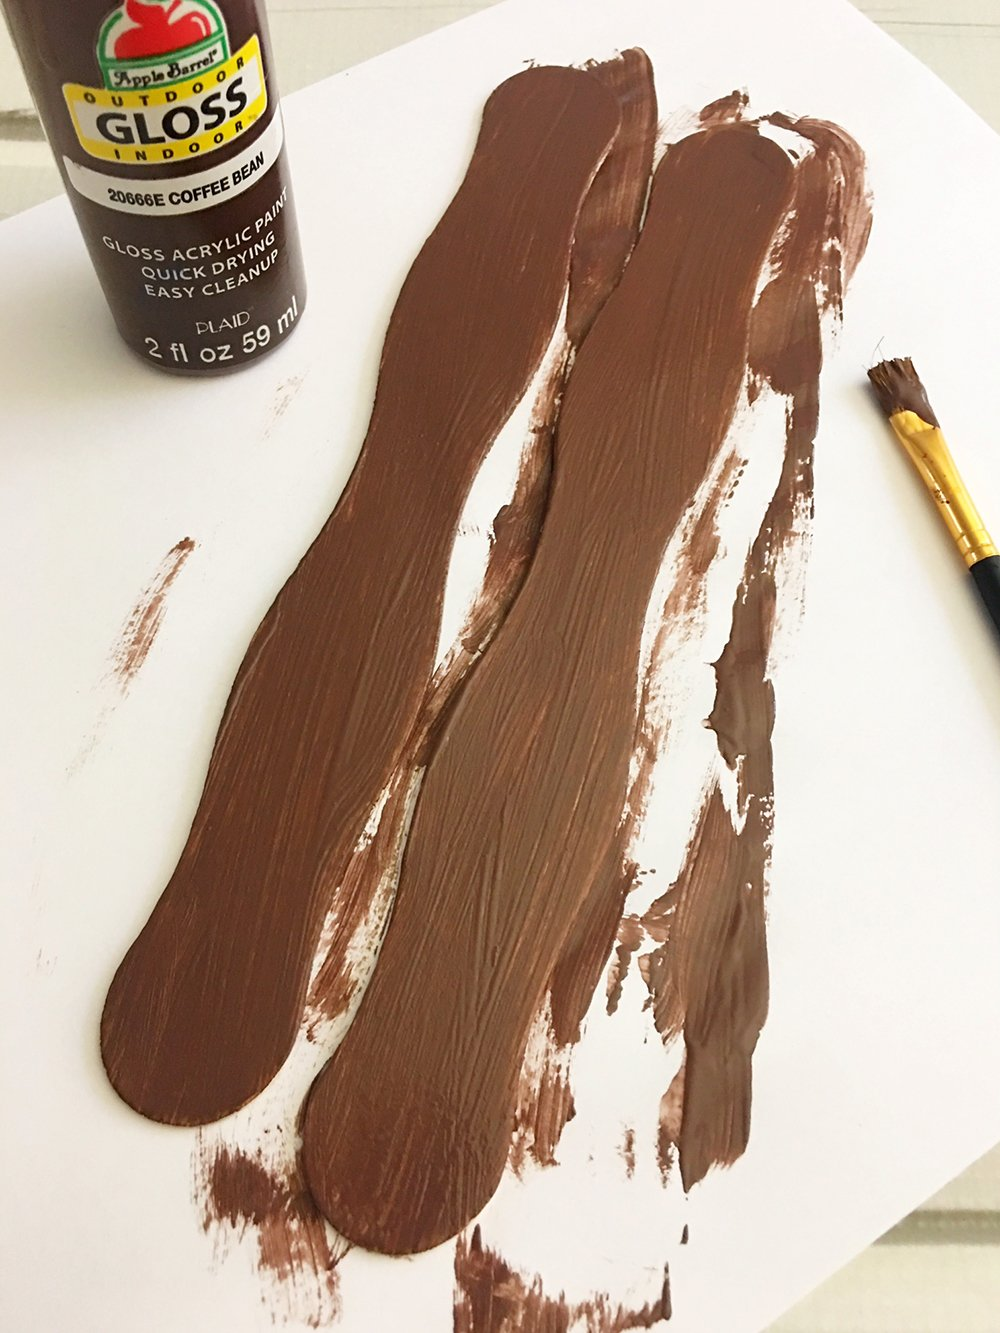 Paint the craft sticks brown to make the body of the reindeer